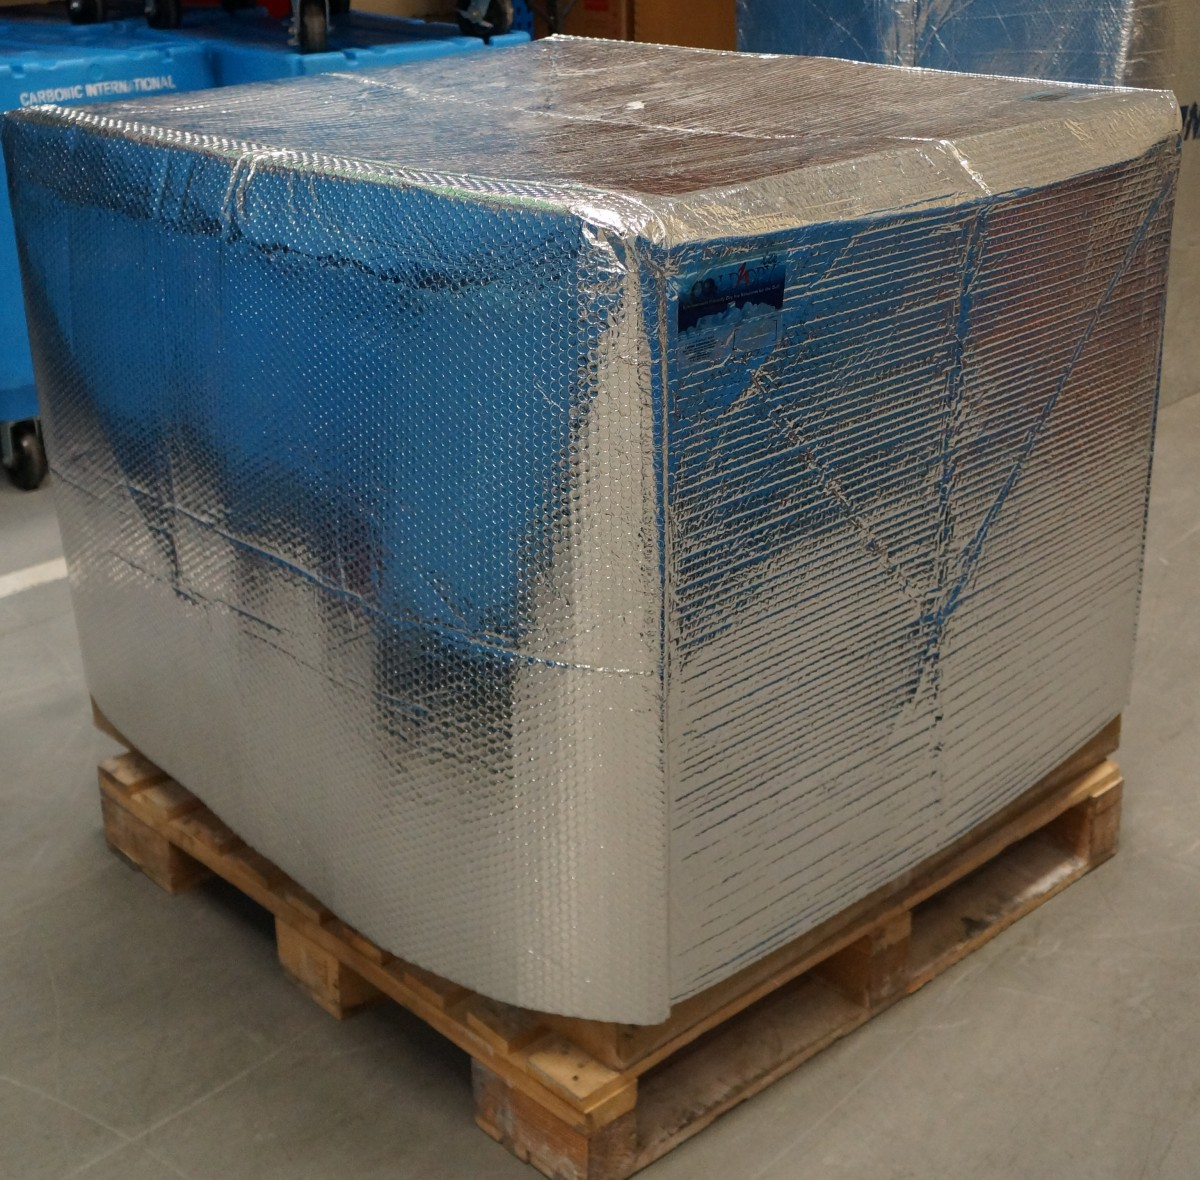 Temperature Insulated Cover Thermal Pallet Cover For